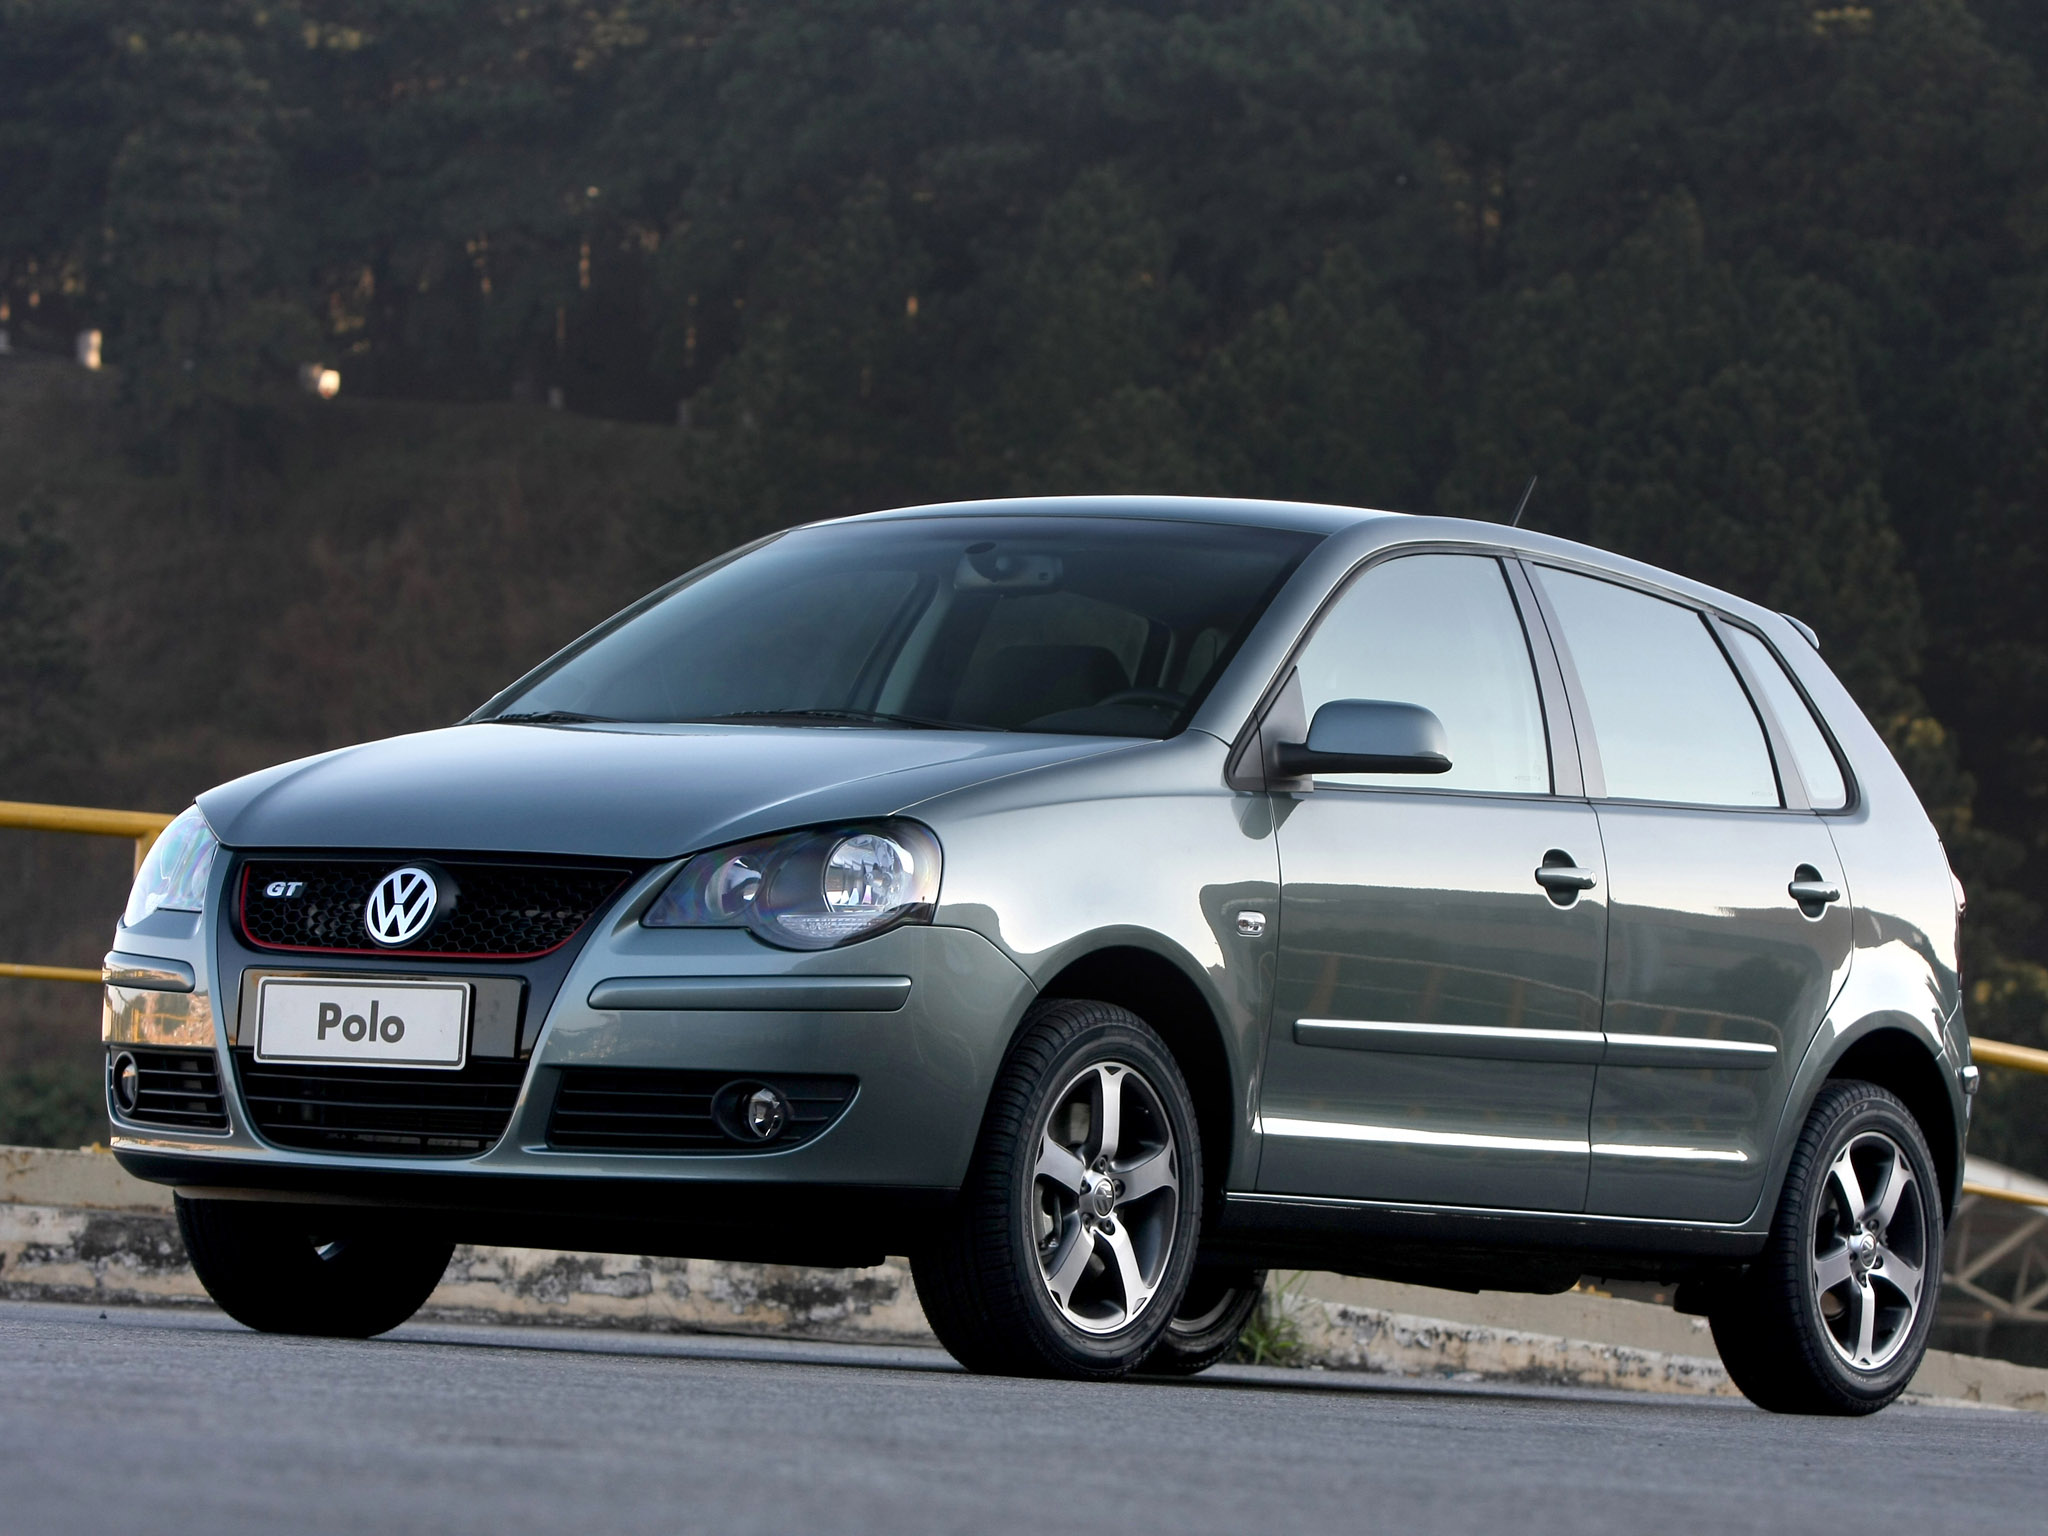 volkswagen polo gt 2008 volkswagen polo gt 2008 photo 07 car in pictures car photo gallery. Black Bedroom Furniture Sets. Home Design Ideas